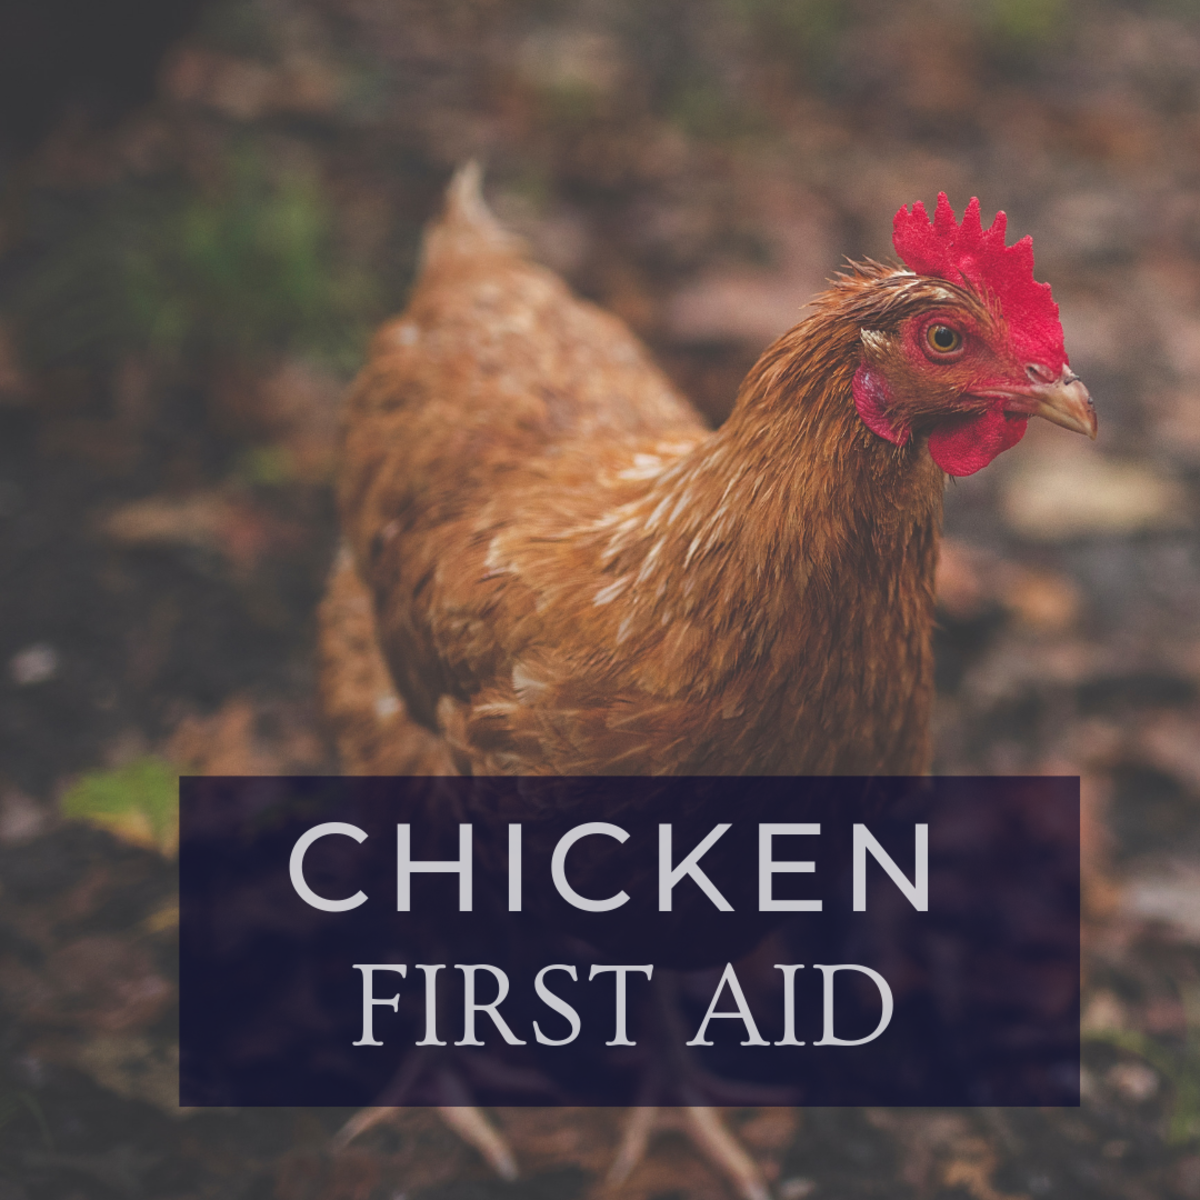 First Aid: How to Care for an Injured Chicken